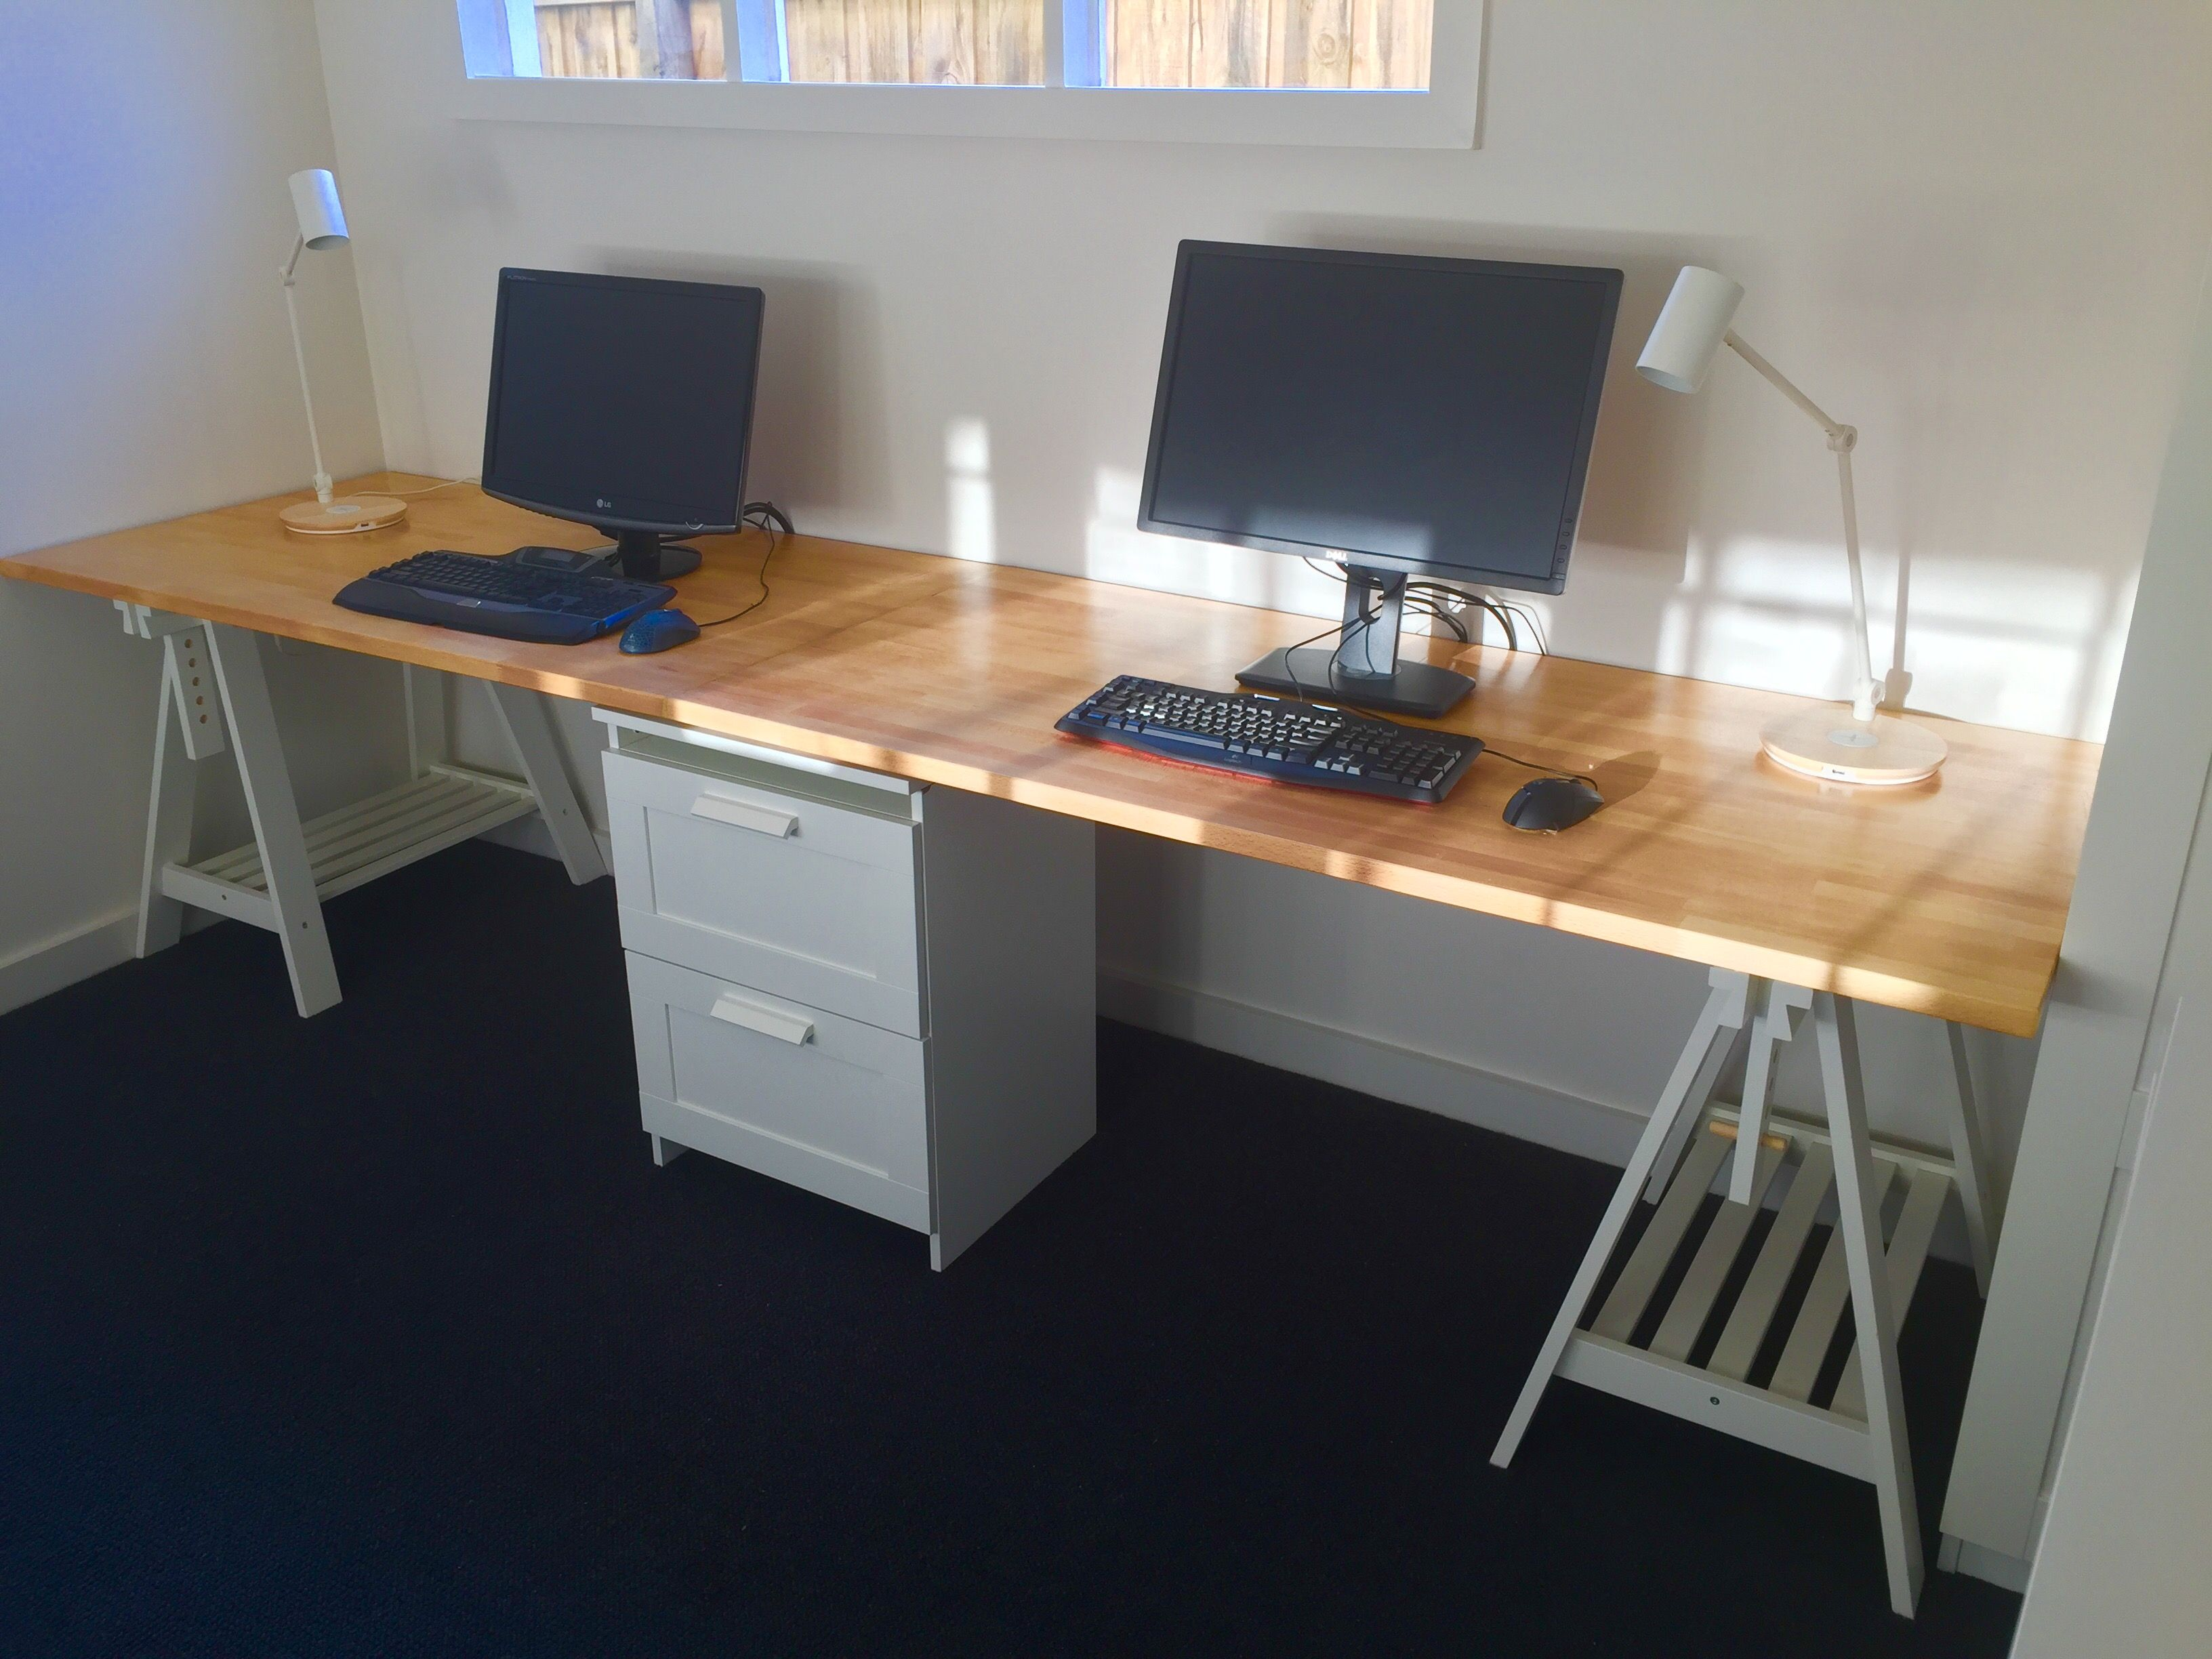 Long Home Office Desk Made From Two Ikea Gerton Beech Table Tops With Support From Two Ikea Adils L Office Design Diy Office Furniture Design Ikea Office Desk